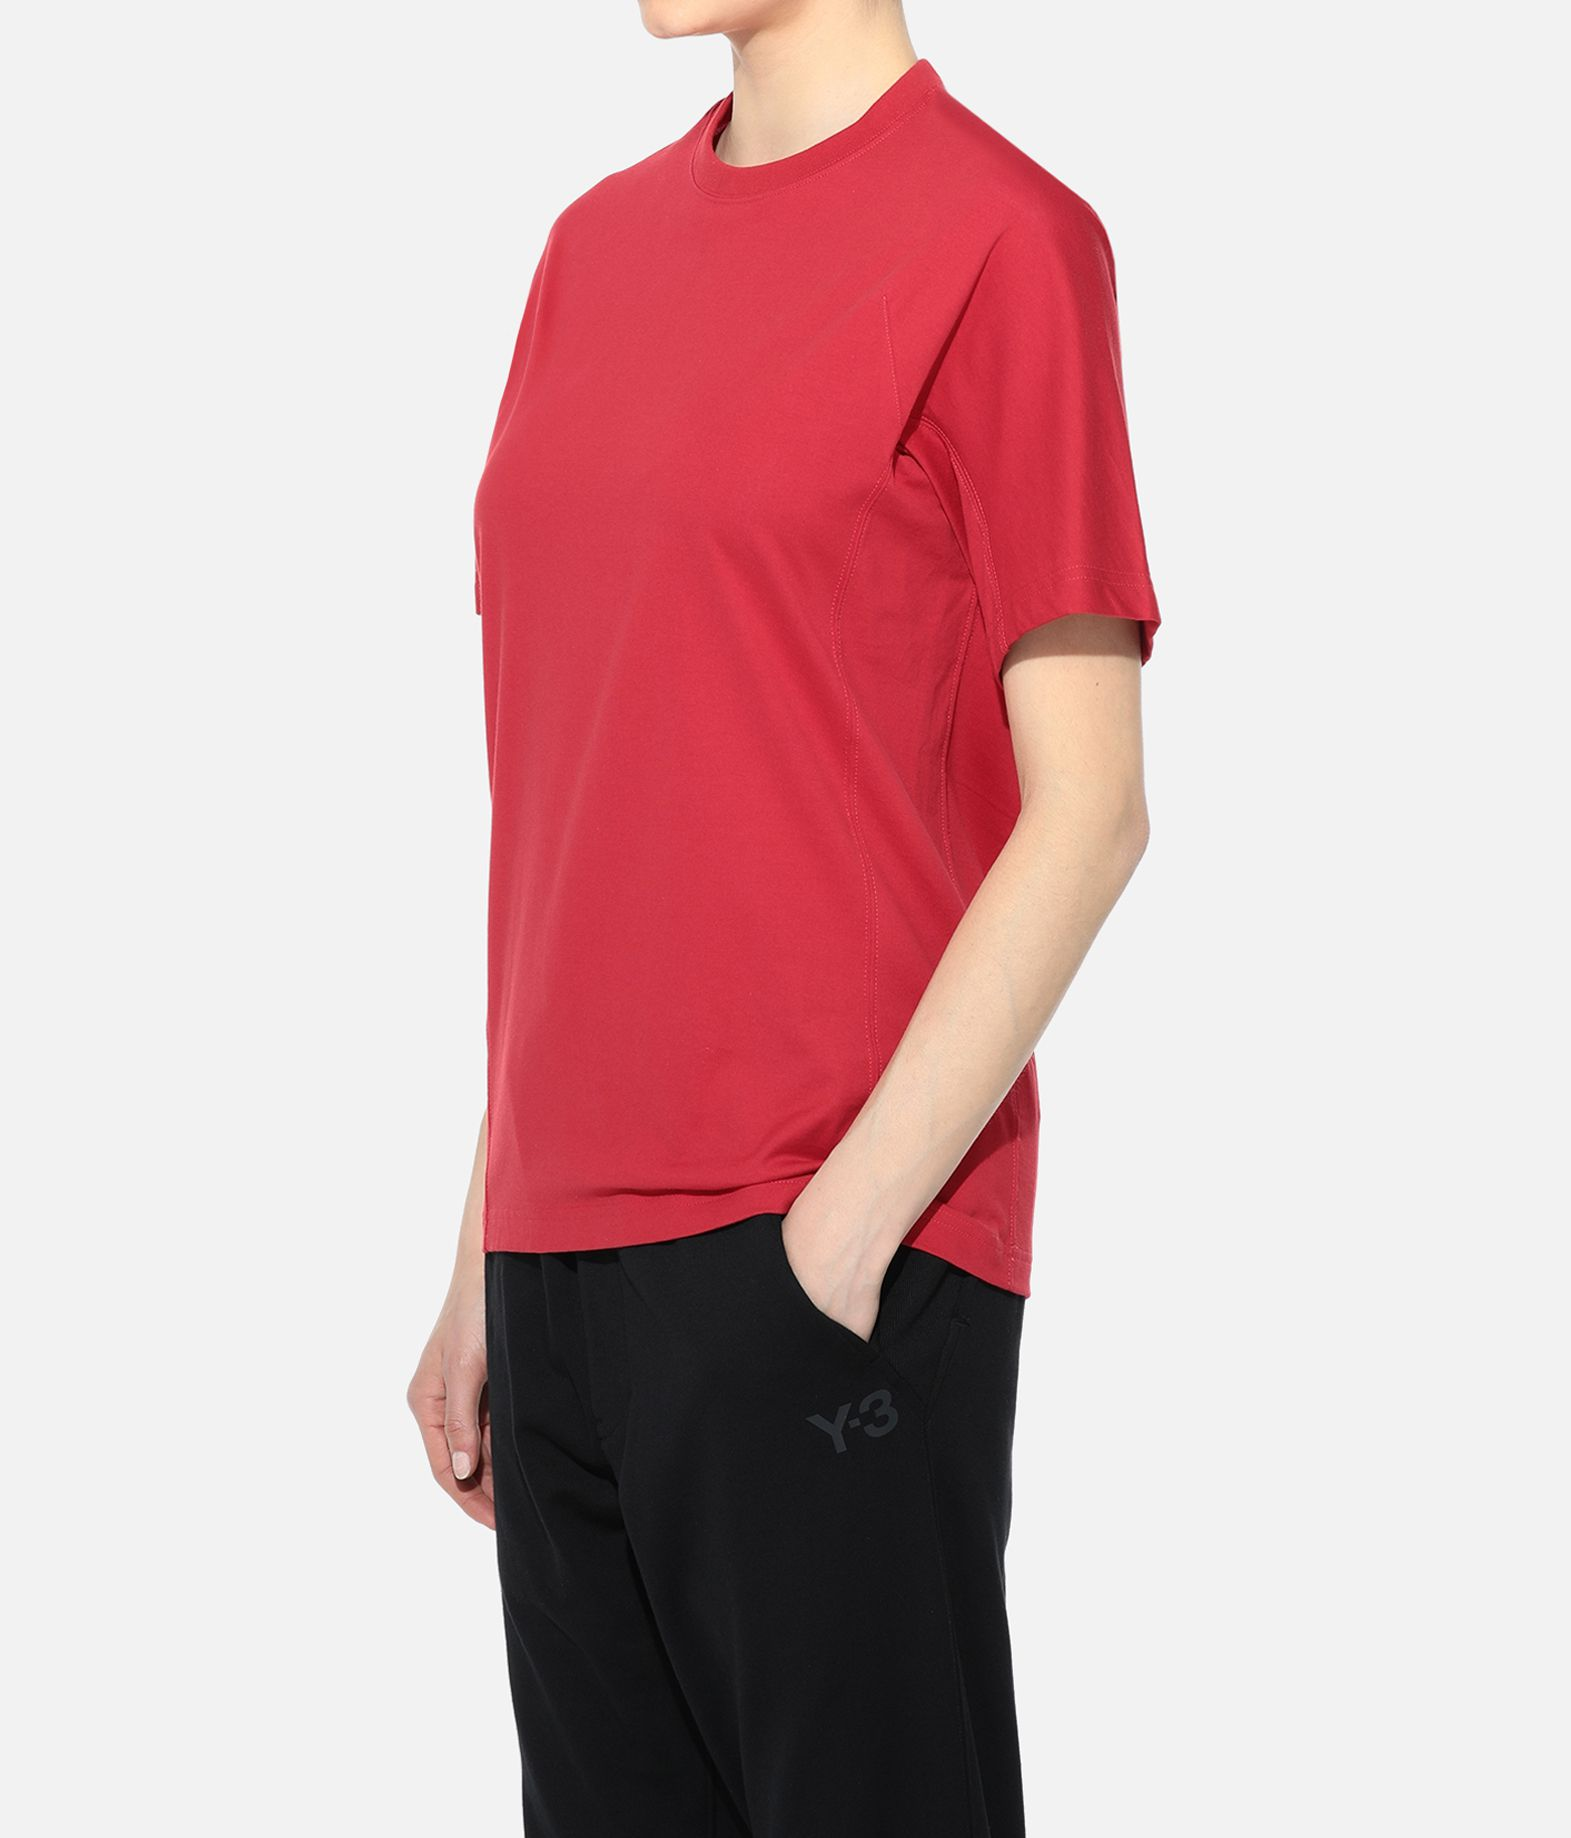 Y-3 Y-3 Classic Crewneck Tee Short sleeve t-shirt Woman e